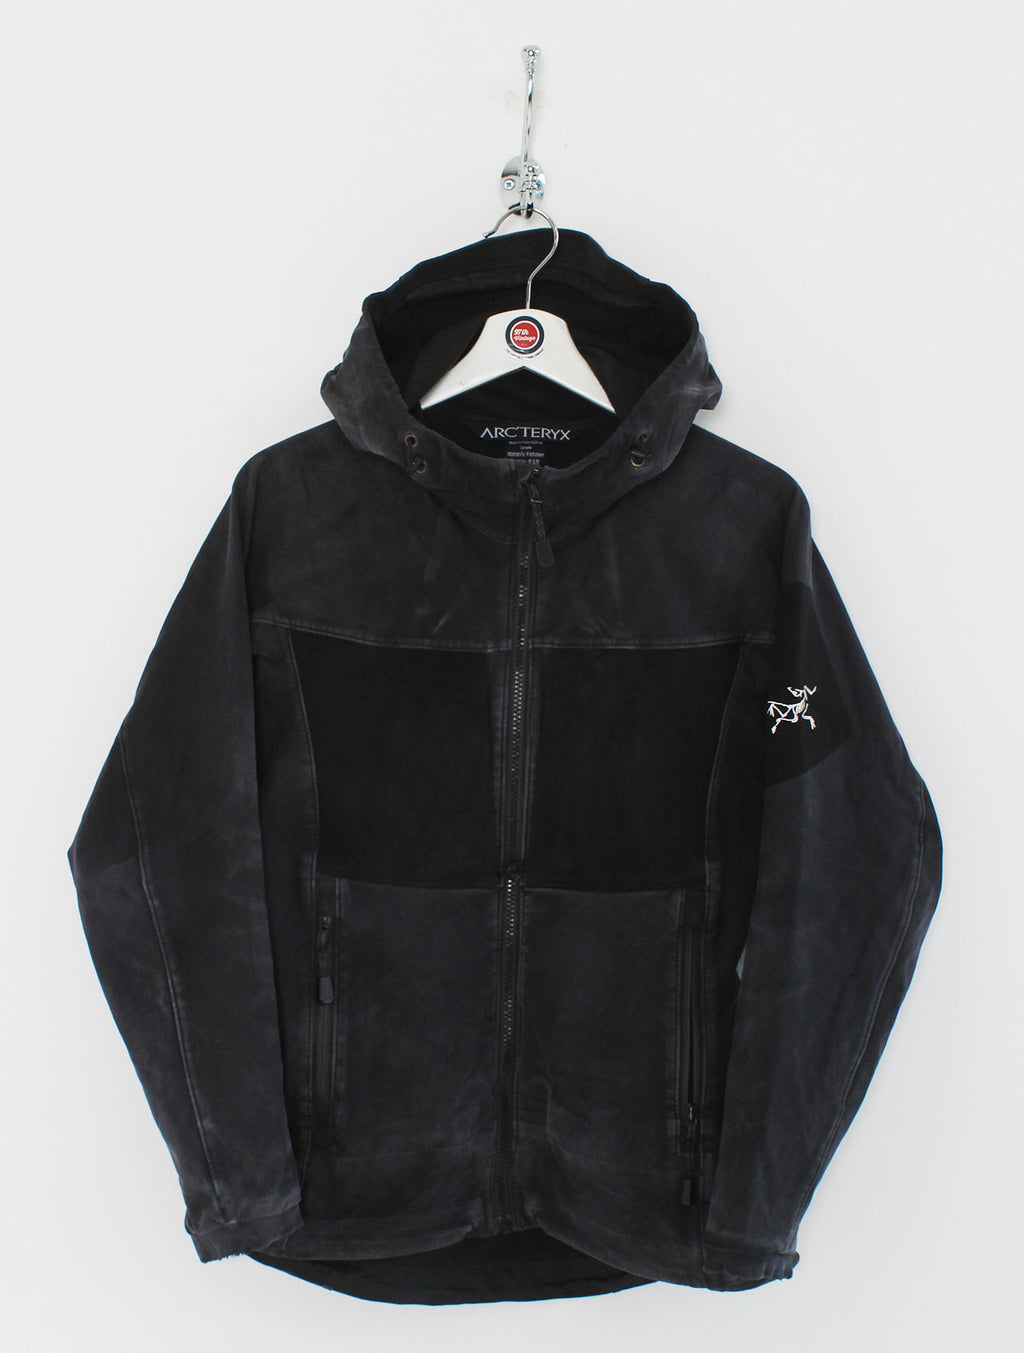 Women's Arcteryx Jacket (S)